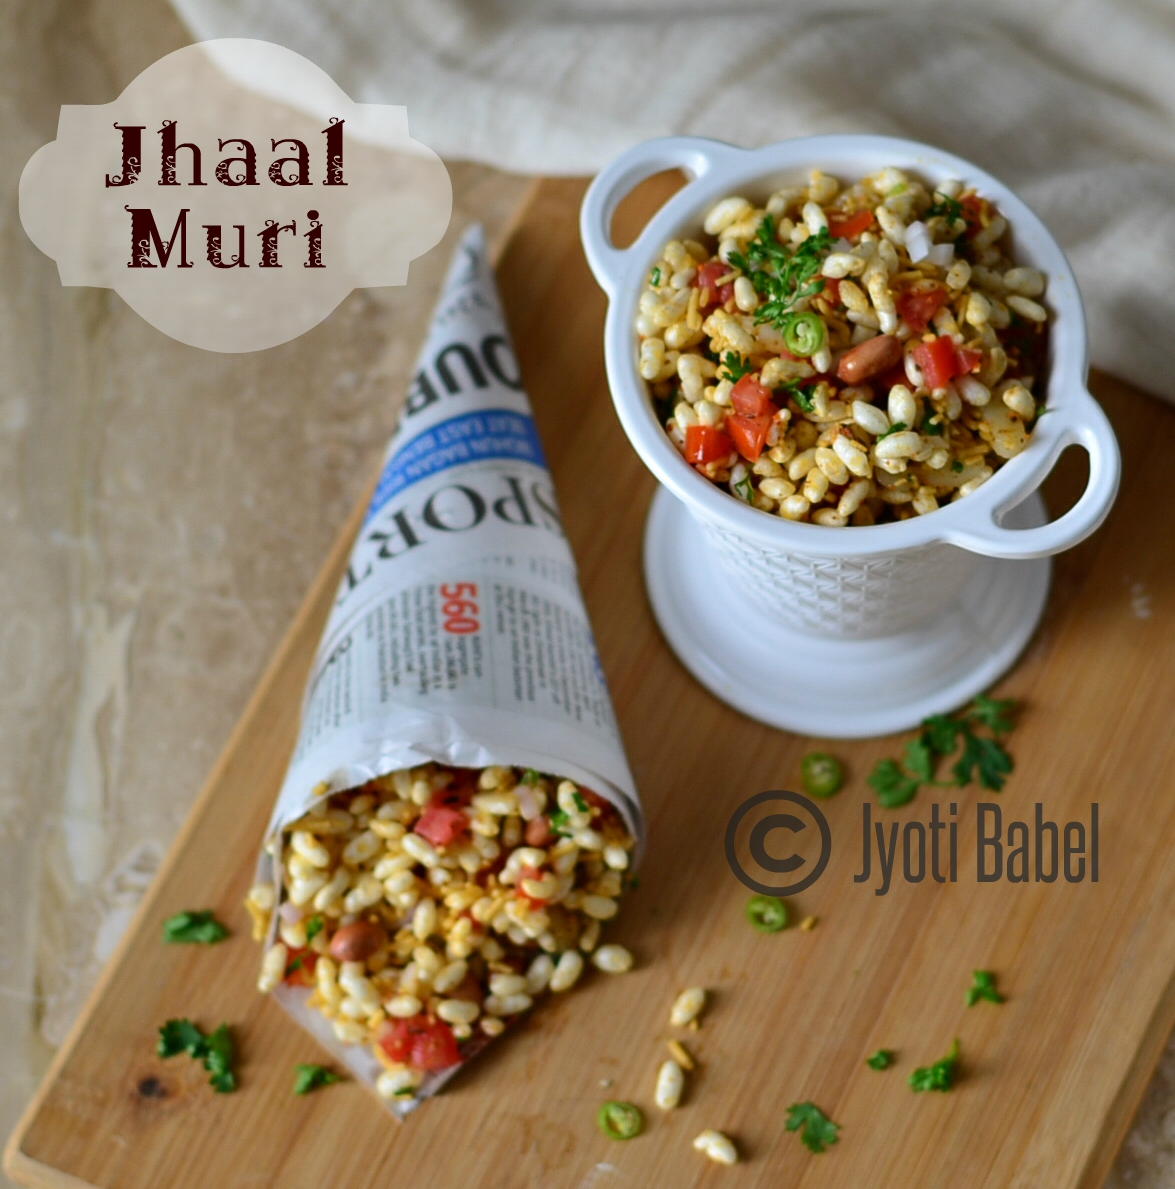 Jyotis pages jhaal muri how to make jhaal muri from scratch jhaal muri how to make jhaal muri from scratch street food recipes forumfinder Images